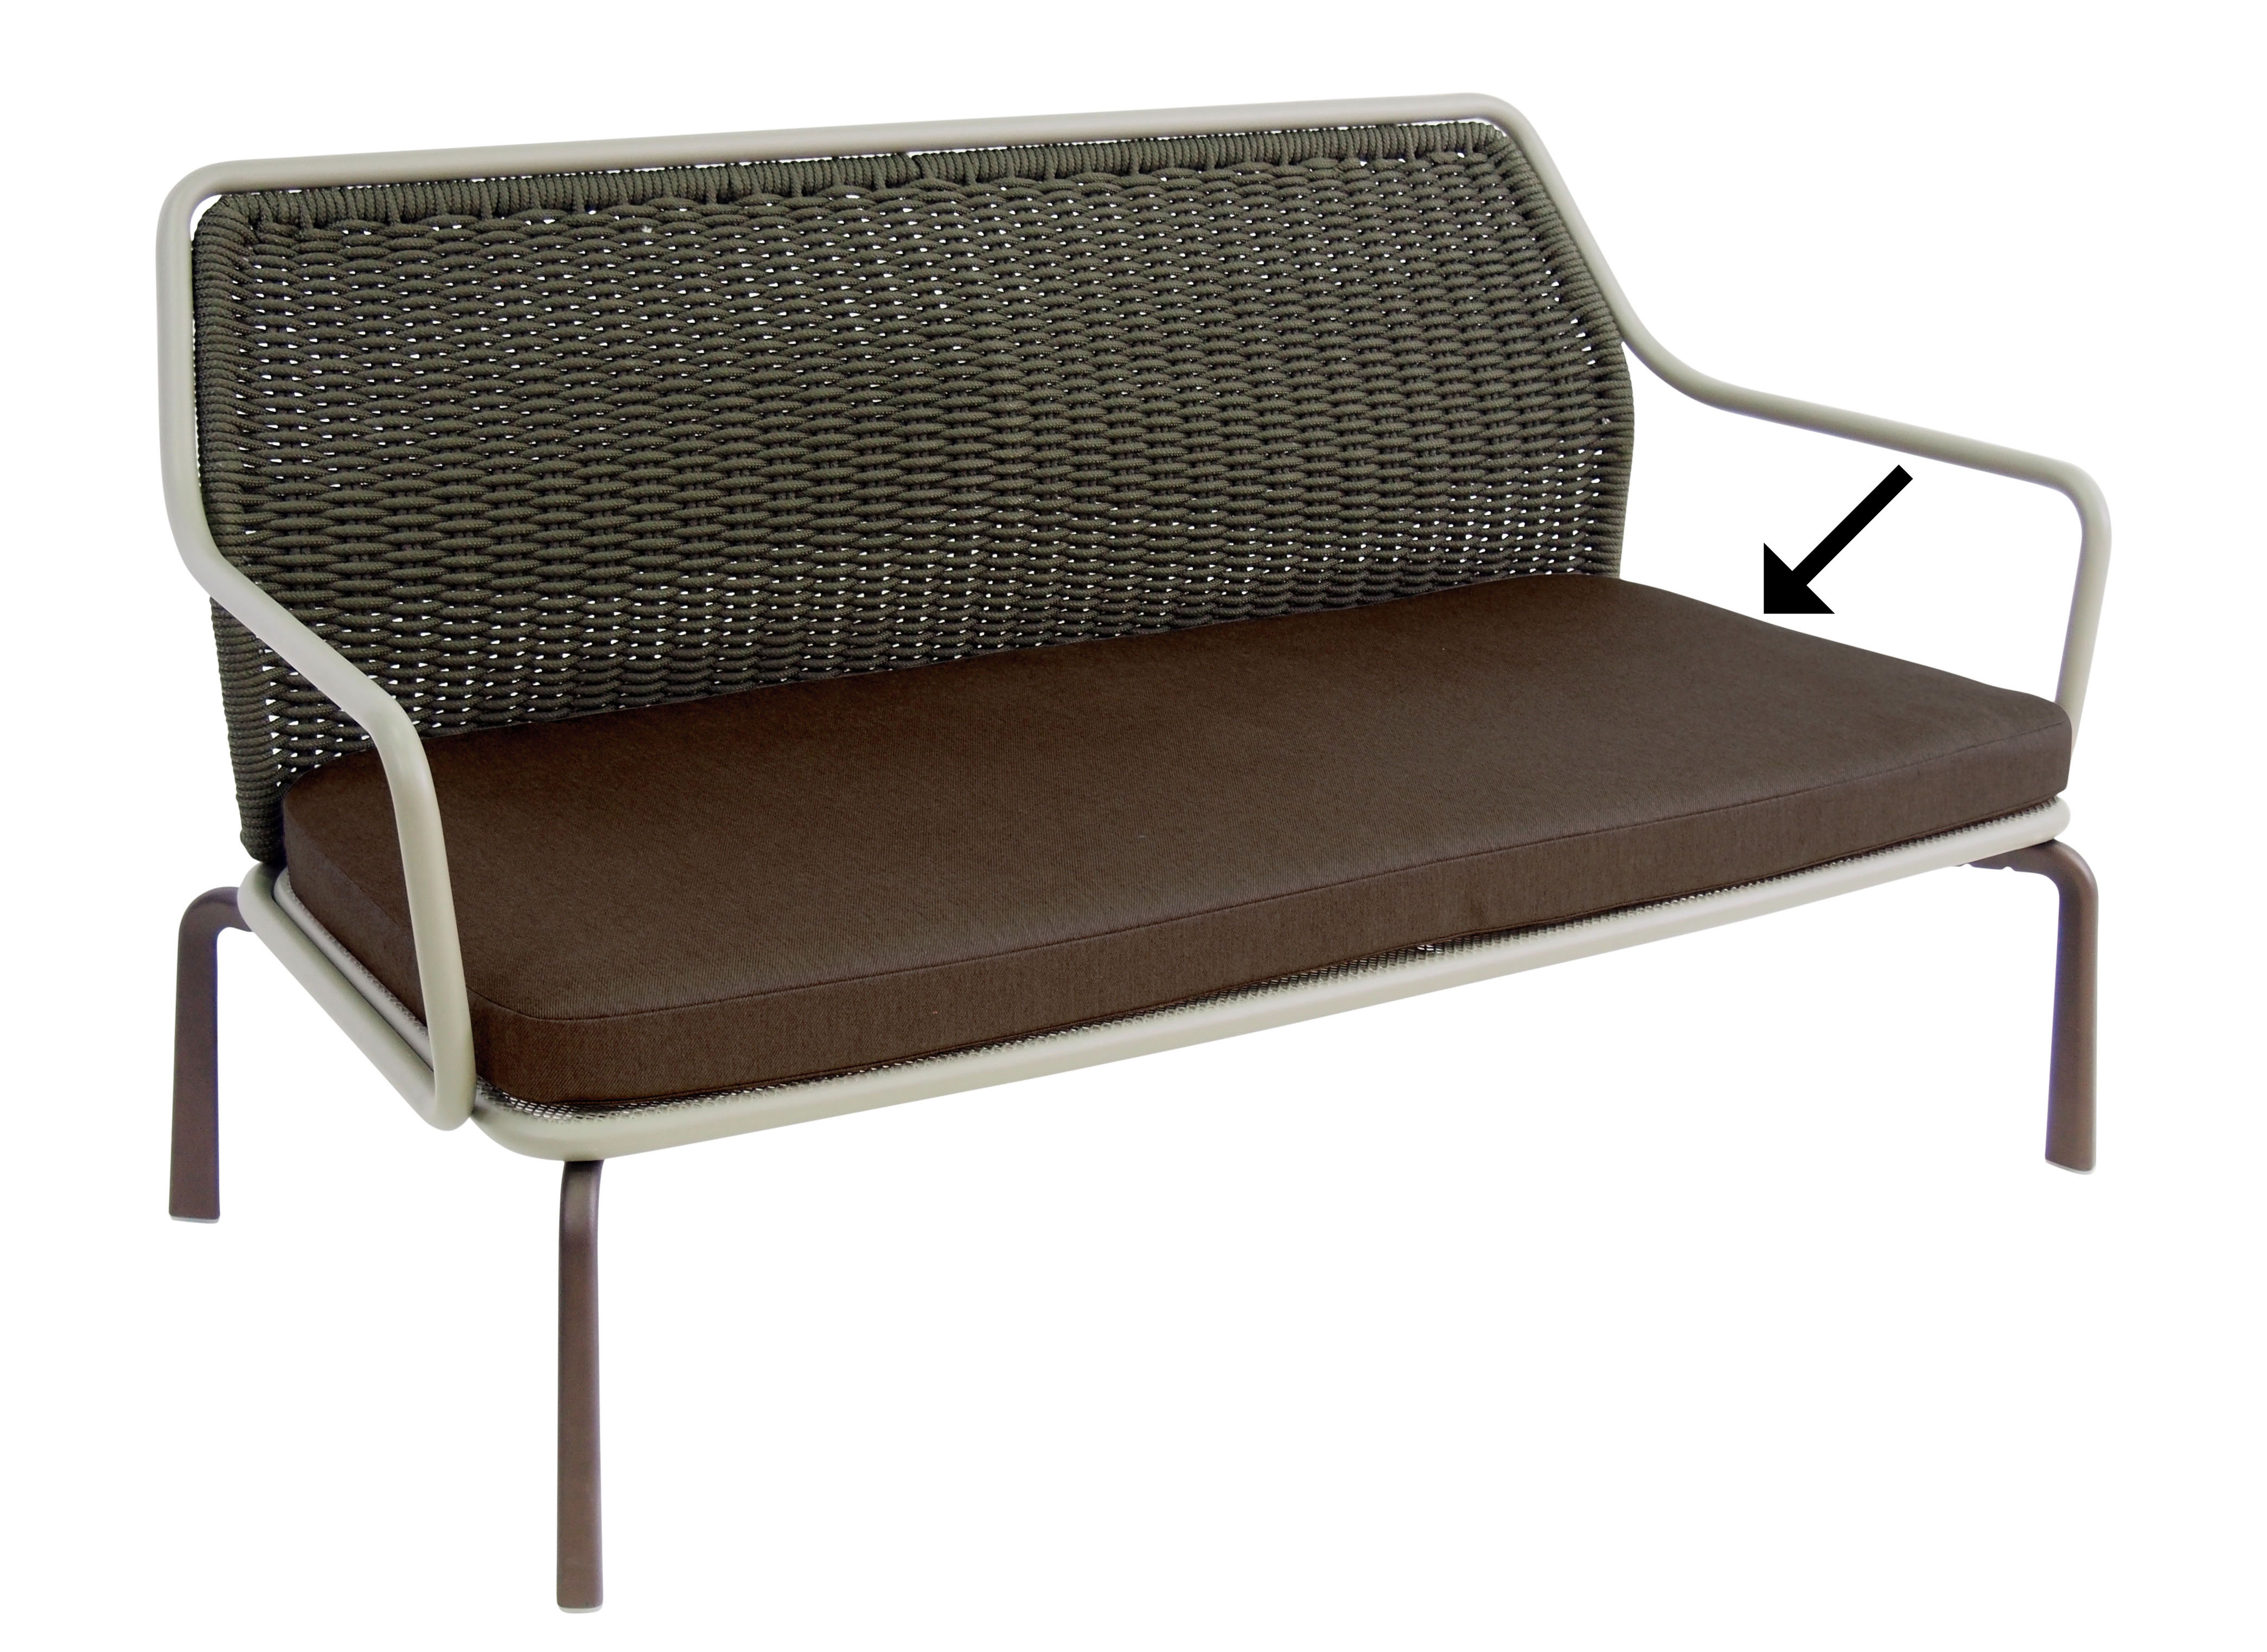 Seat cushion - / for Cross bench India brown by Emu | Made In Design UK